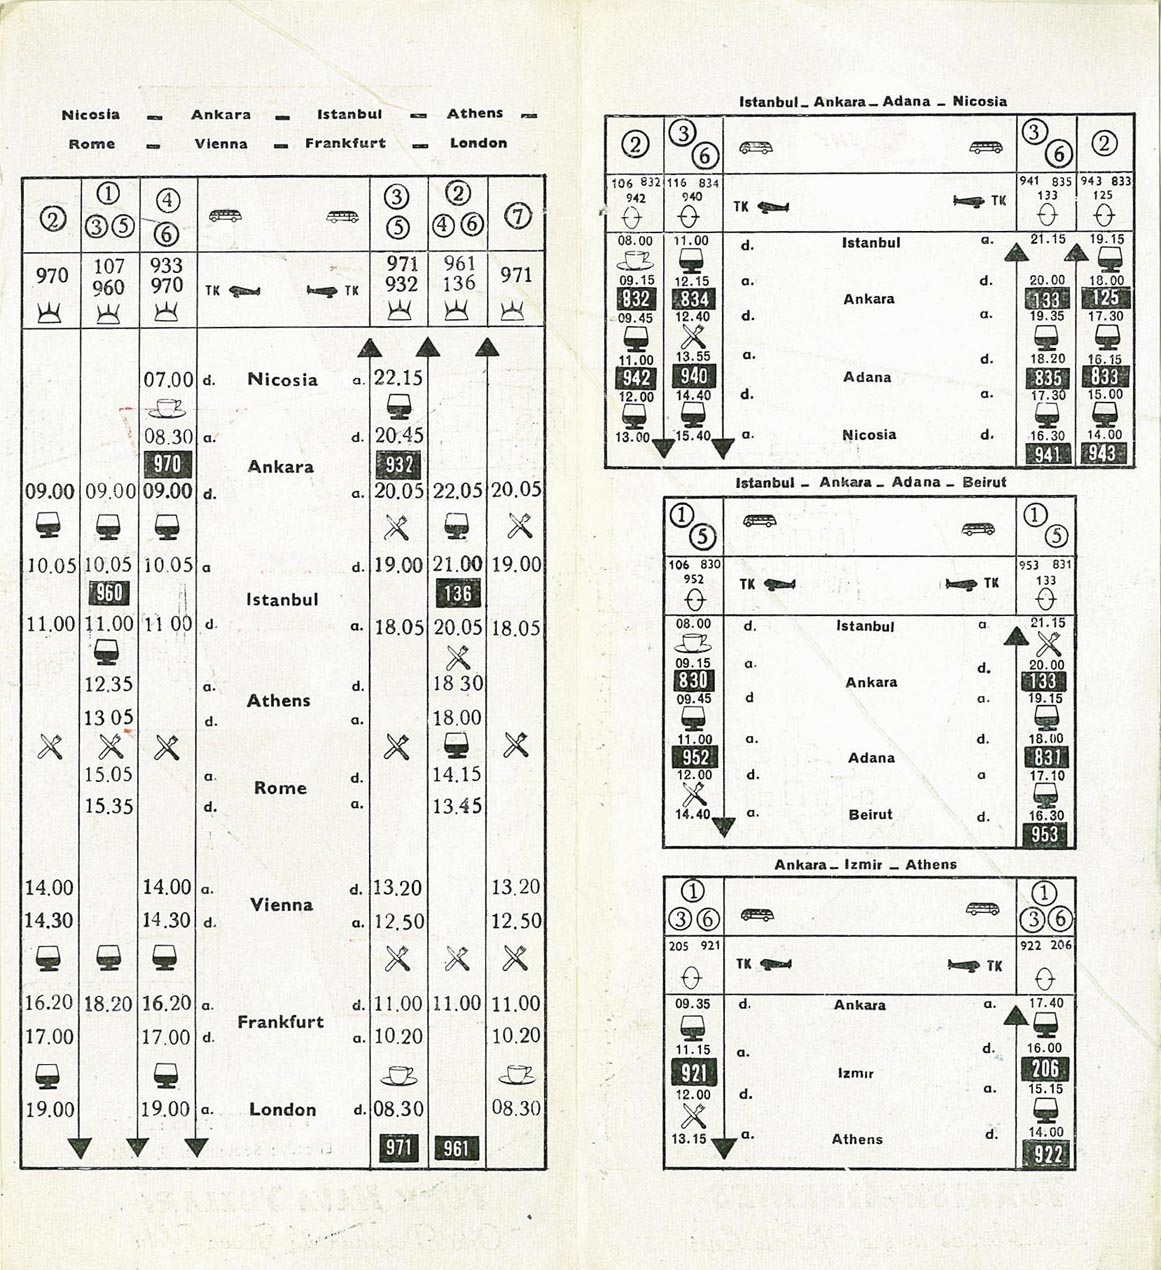 Airline Timetable Images - List of Complete Timetables